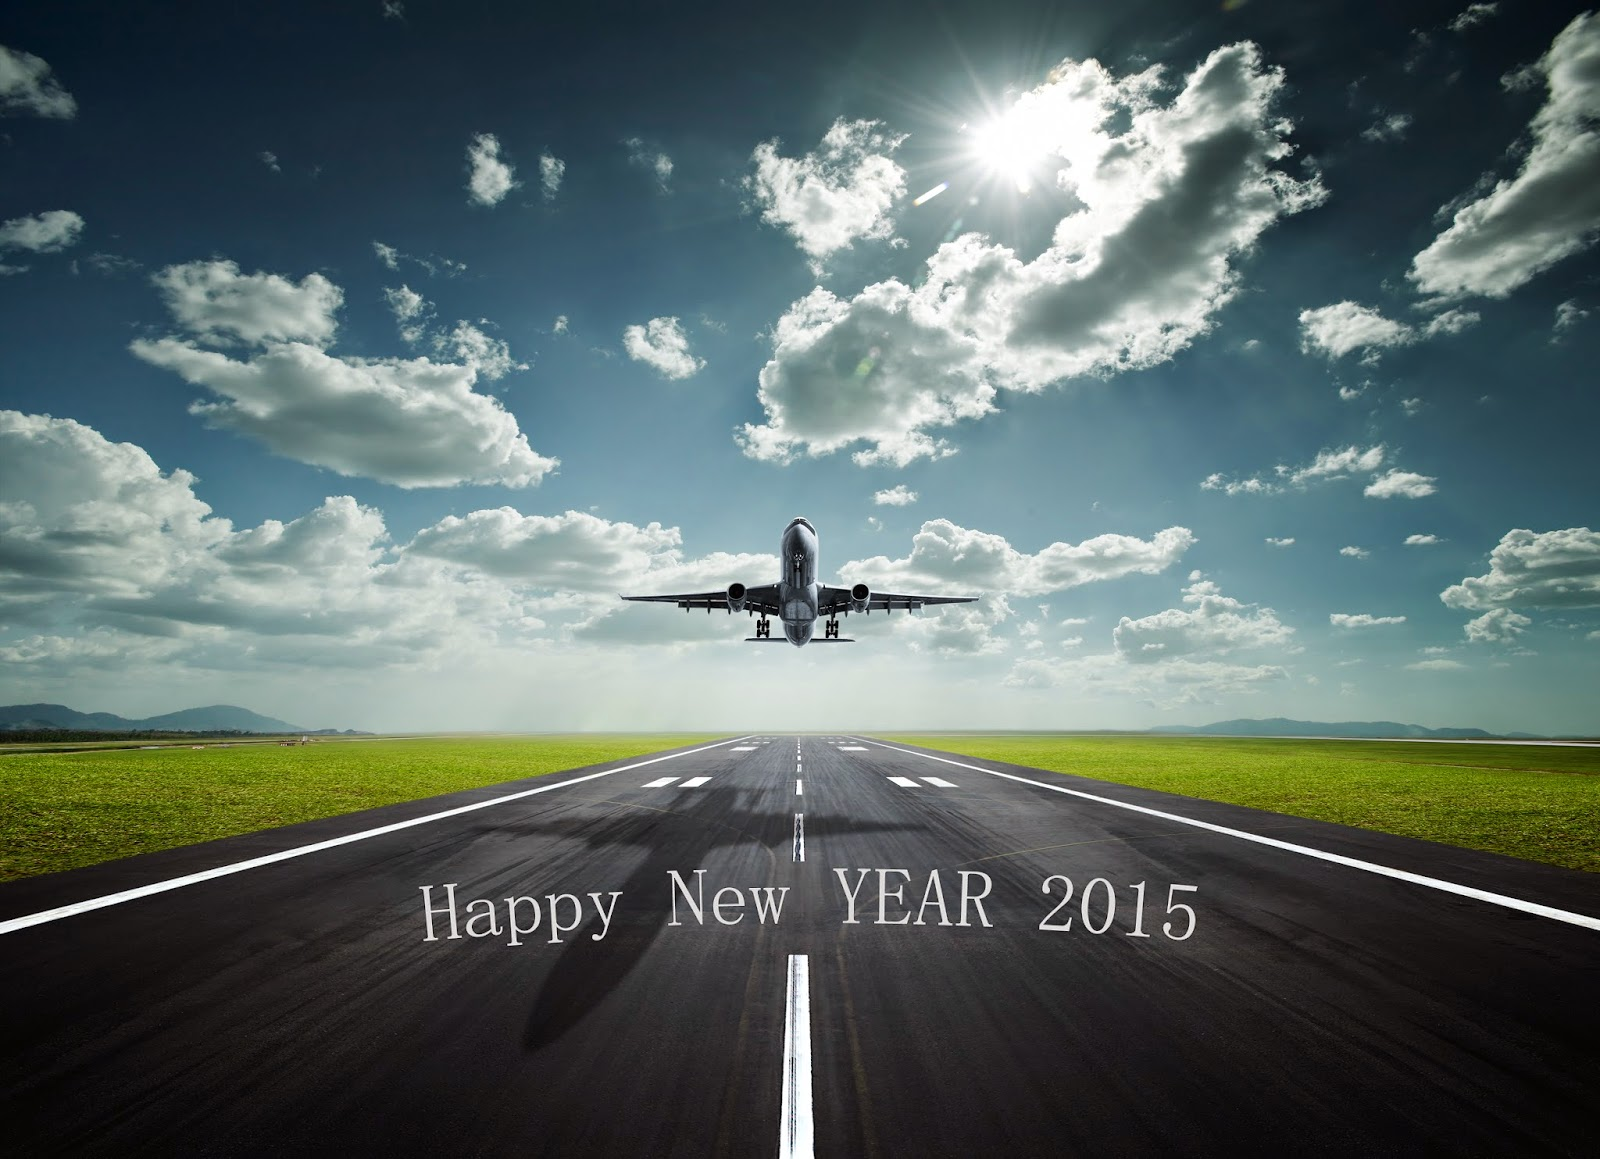 Happy New Year 2015 Greeting Cards - Free Wishing Cards